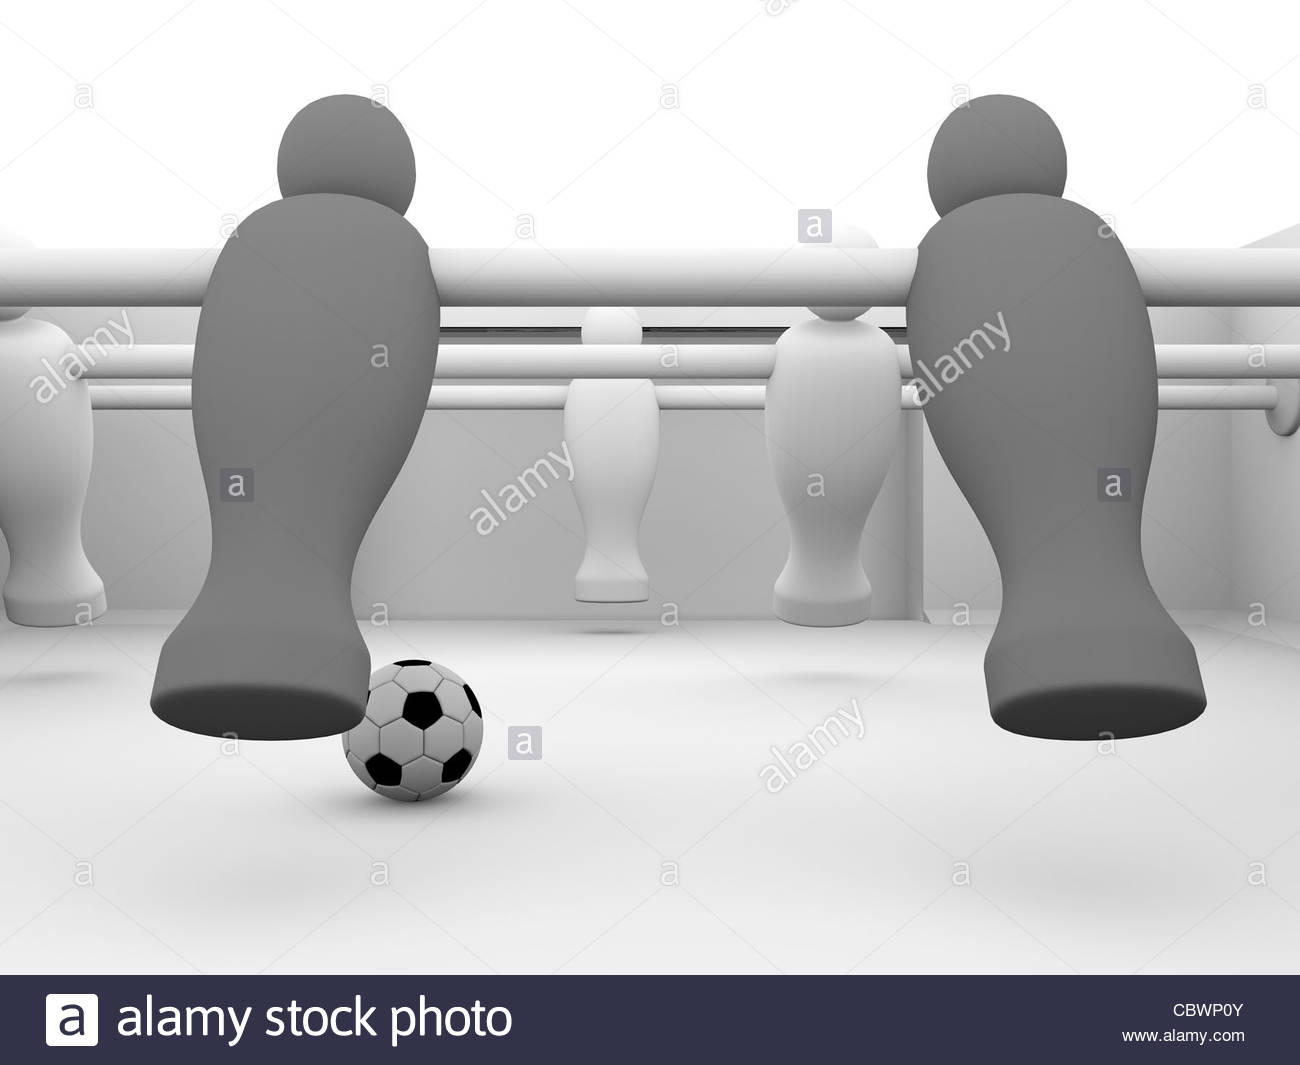 Detailed render of a foosball table with black and white players - Stock Image